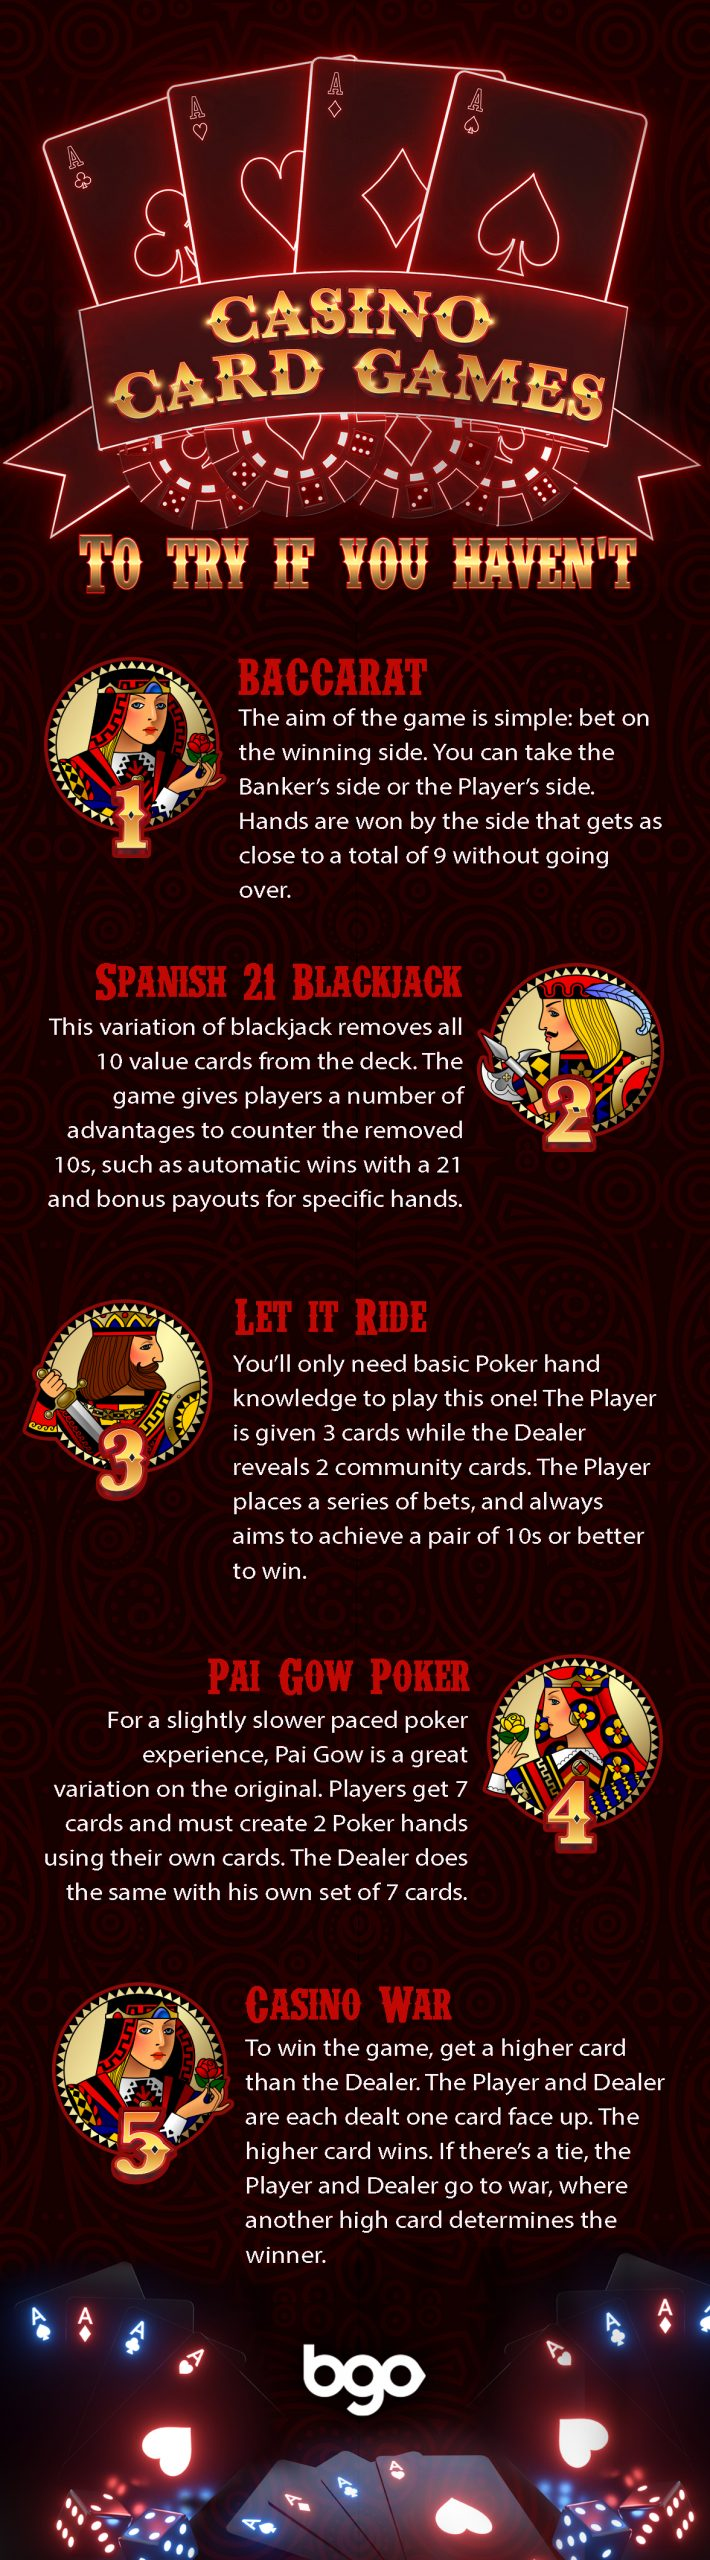 Casino Card Games to try if you havent infographic